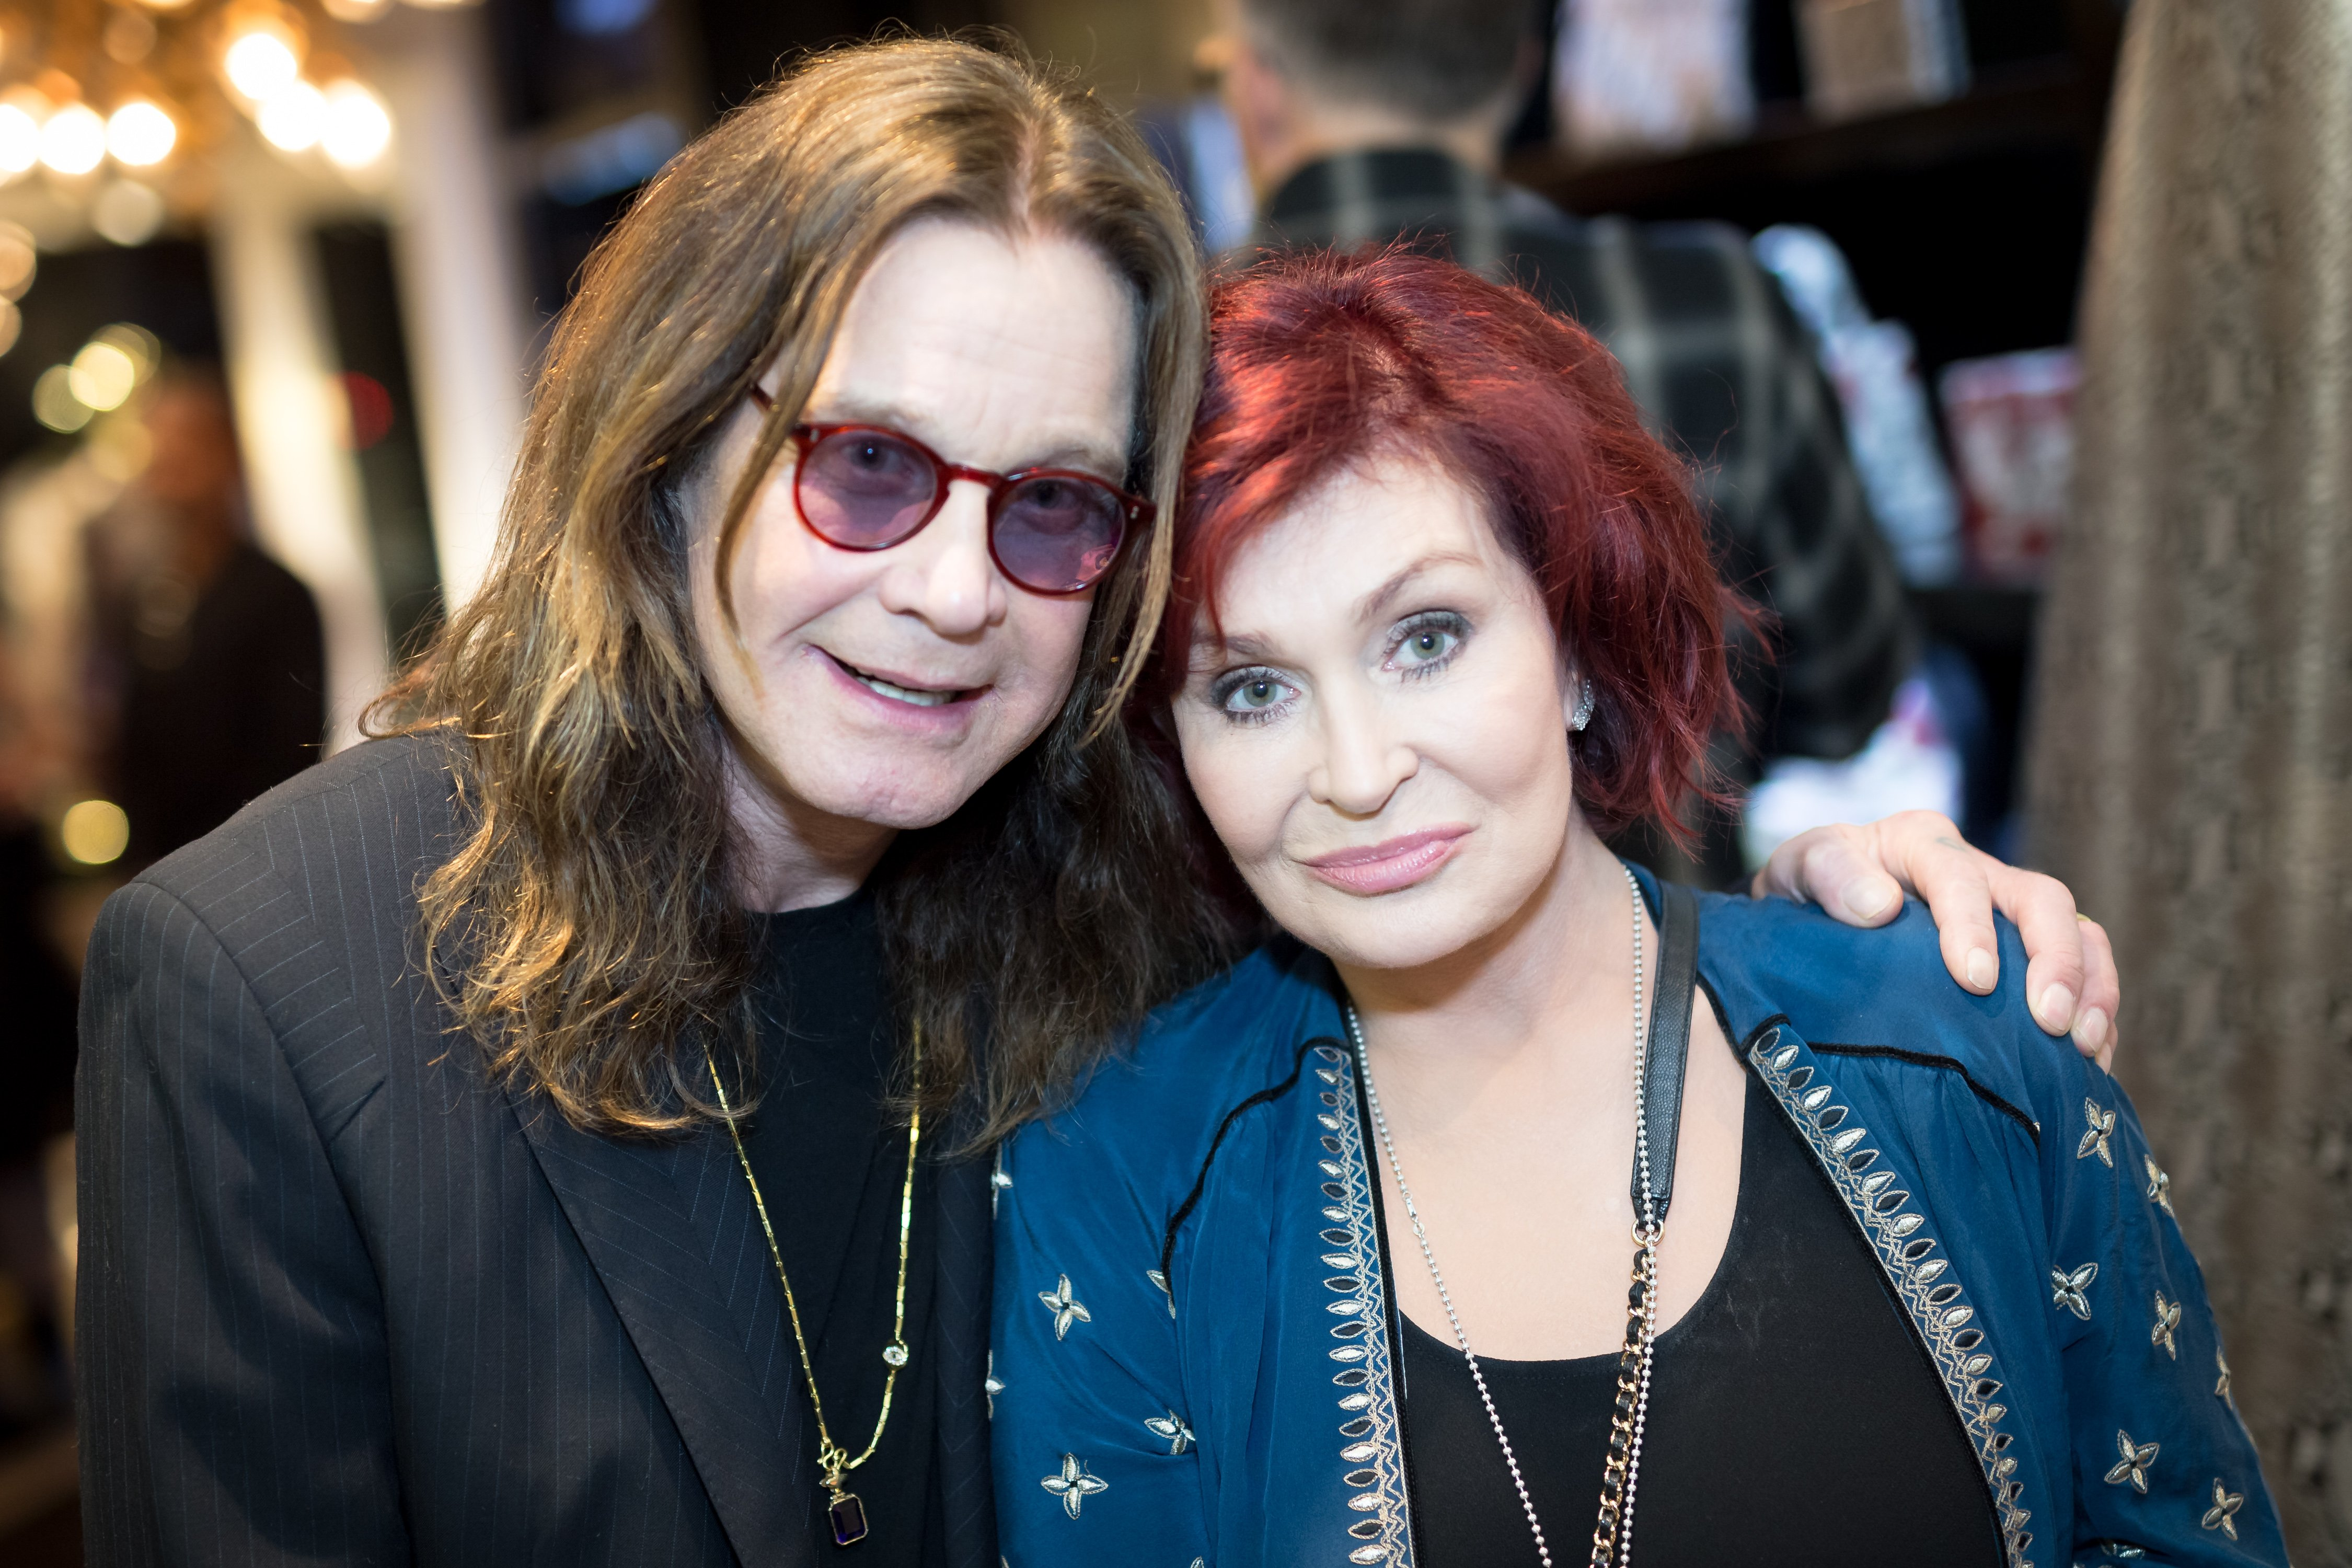 Ozzy and Sharon Osbourne pictured at the Billy Morrison - Aude Somnia Solo Exhibition, 2017, California. | Photo: Getty Images